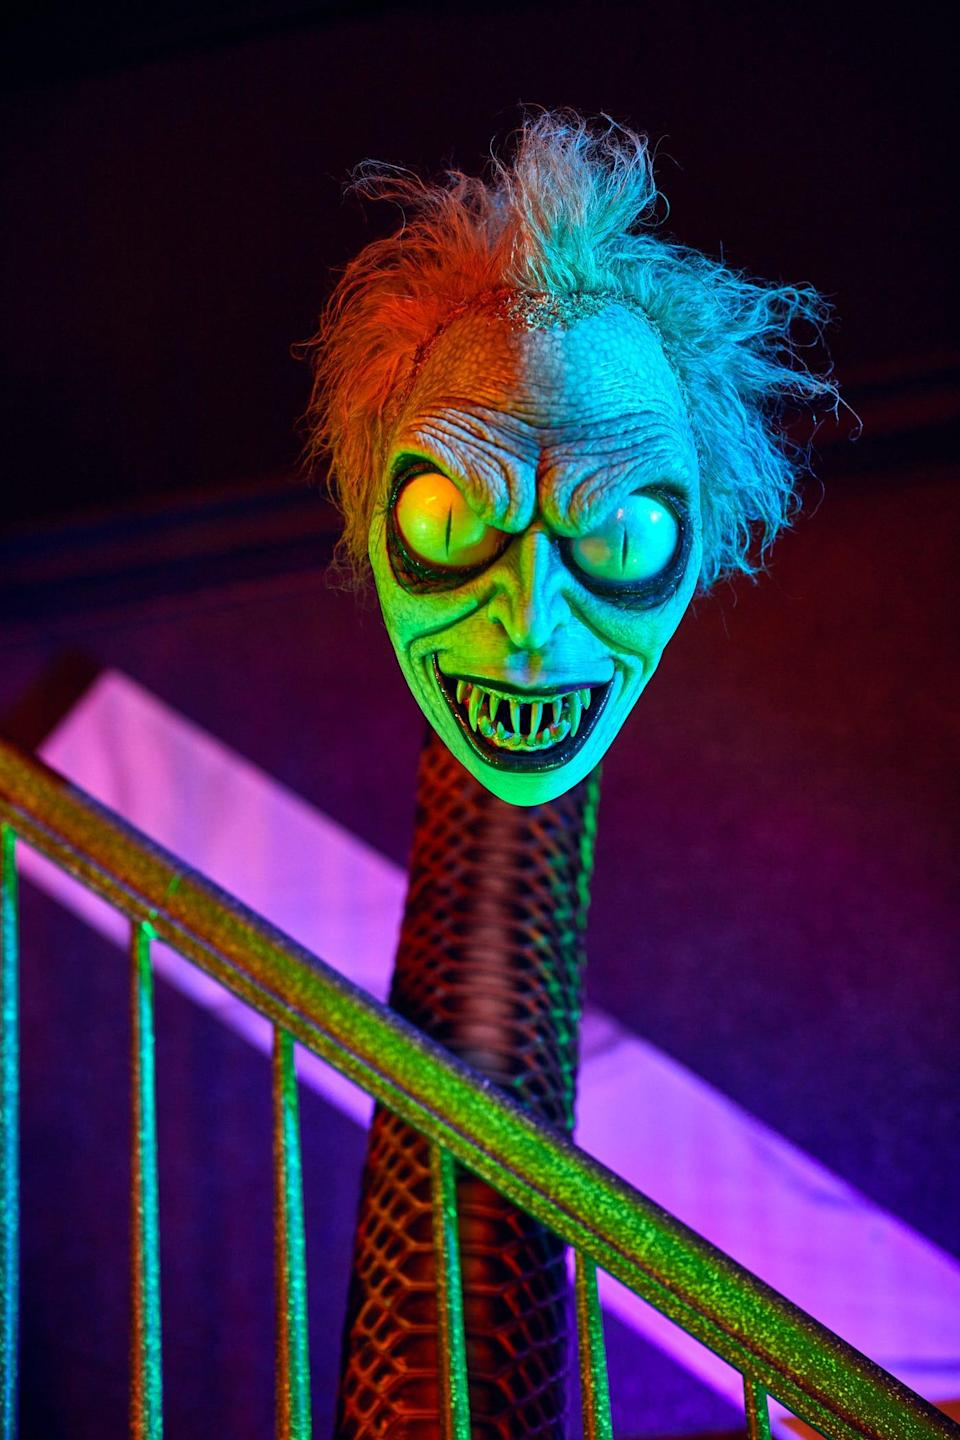 The Halloween Horror Nights Tribute store at Universal Orlando features specialty merchandise inspired by the history of the popular annual event.